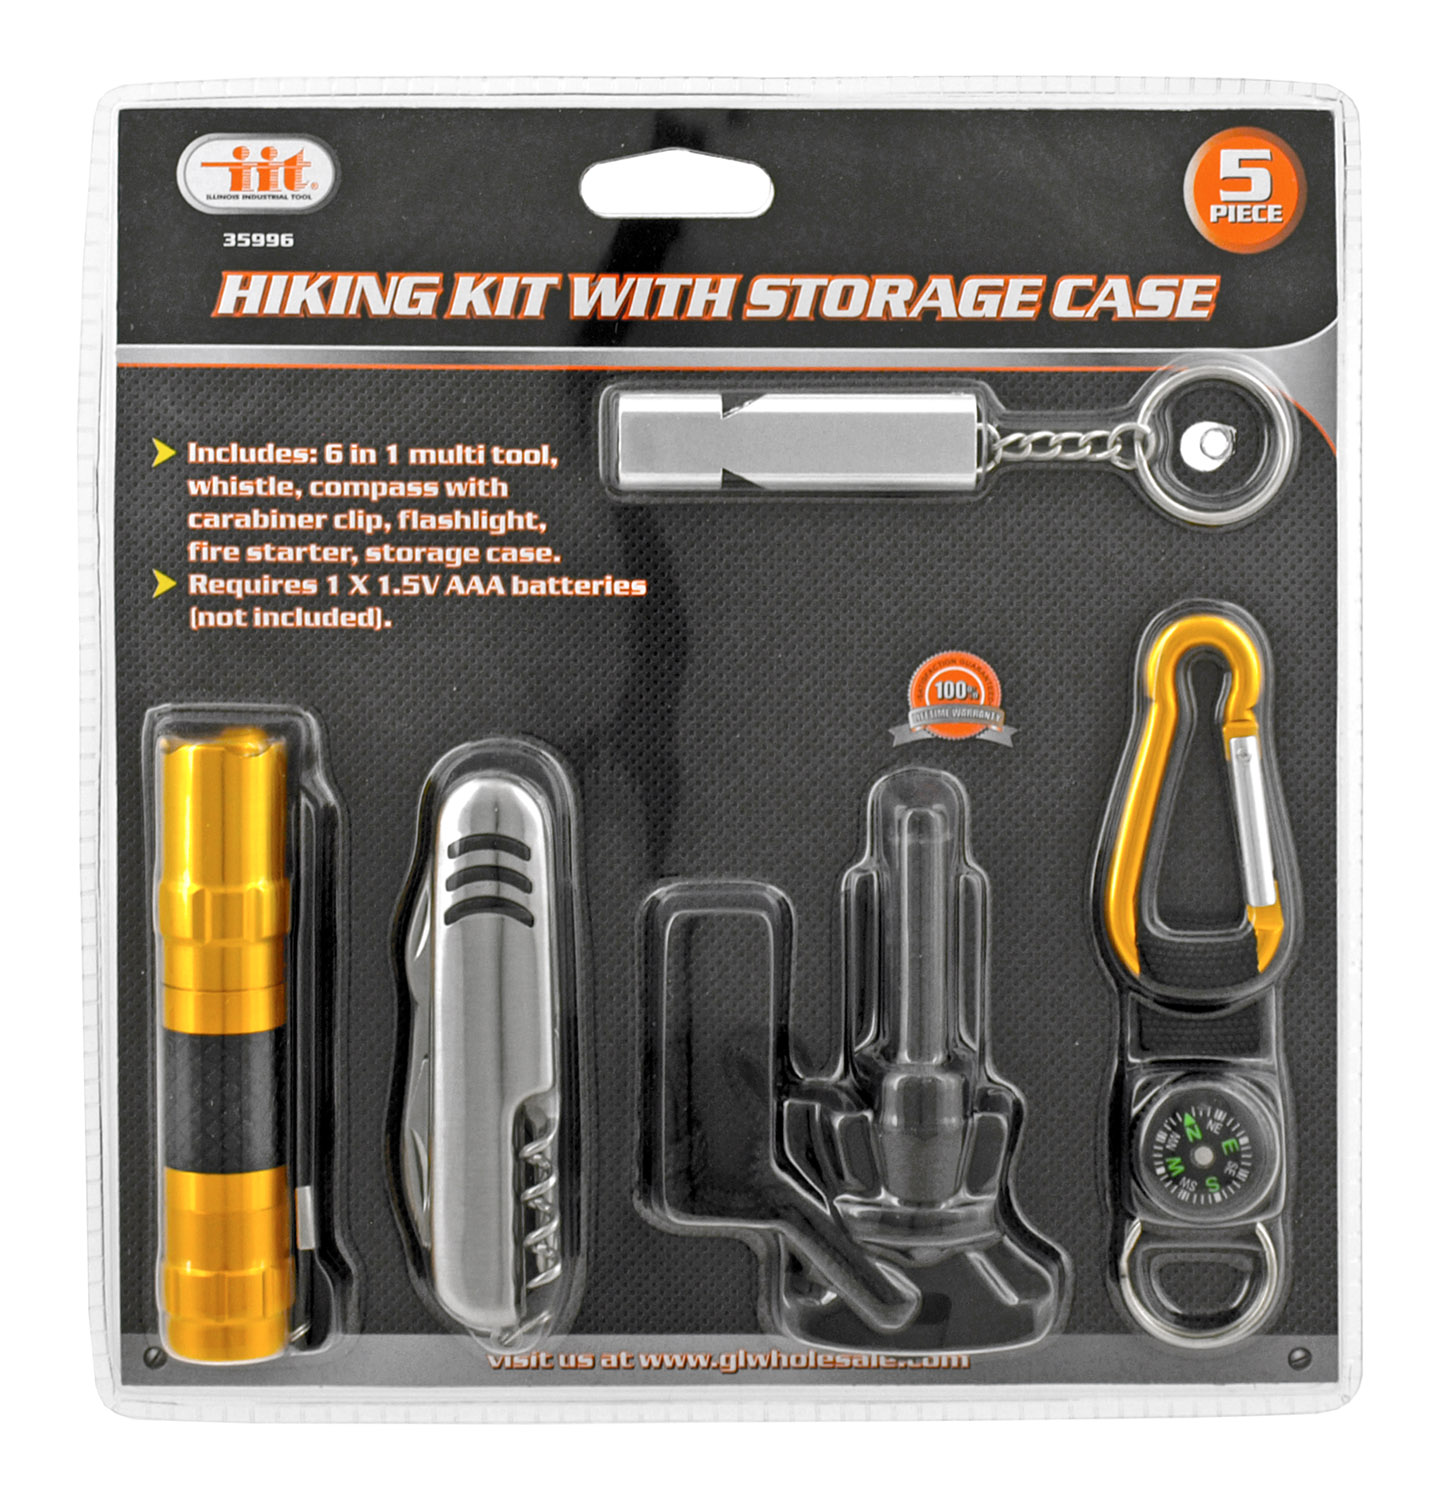 Hiking Kit with Multi Tool, Flashlight, Compass, Carabiner, Whistle and Storage Case